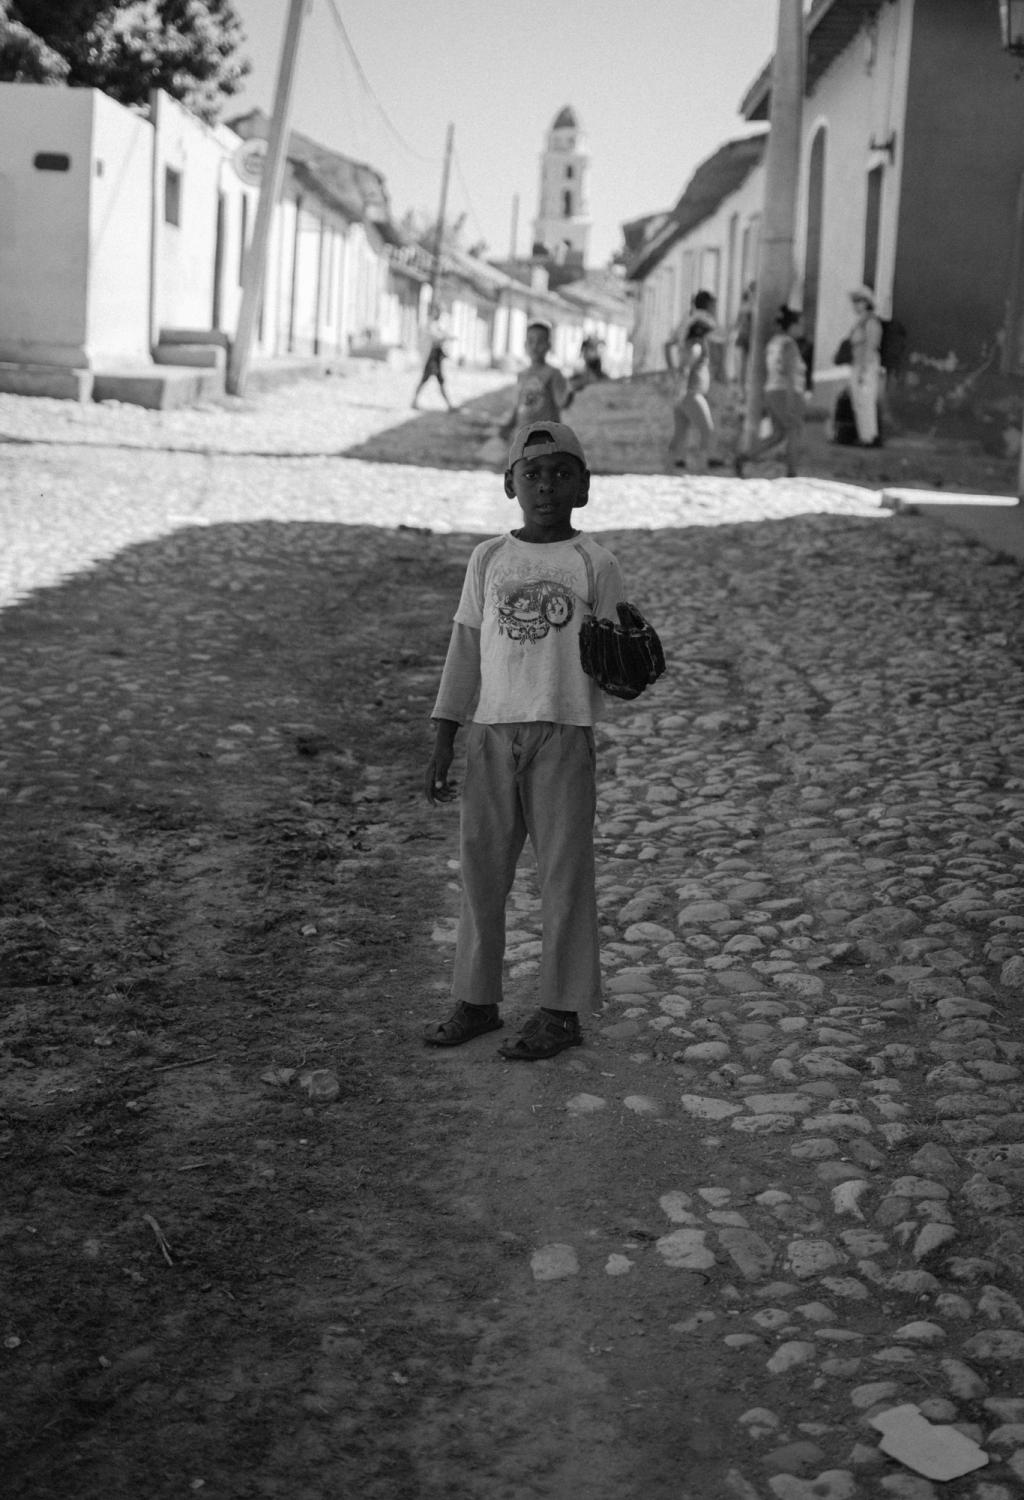 Trinidad. Alongside boxing and soccer, baseball (pelota) is one of the most represented sports on the island.